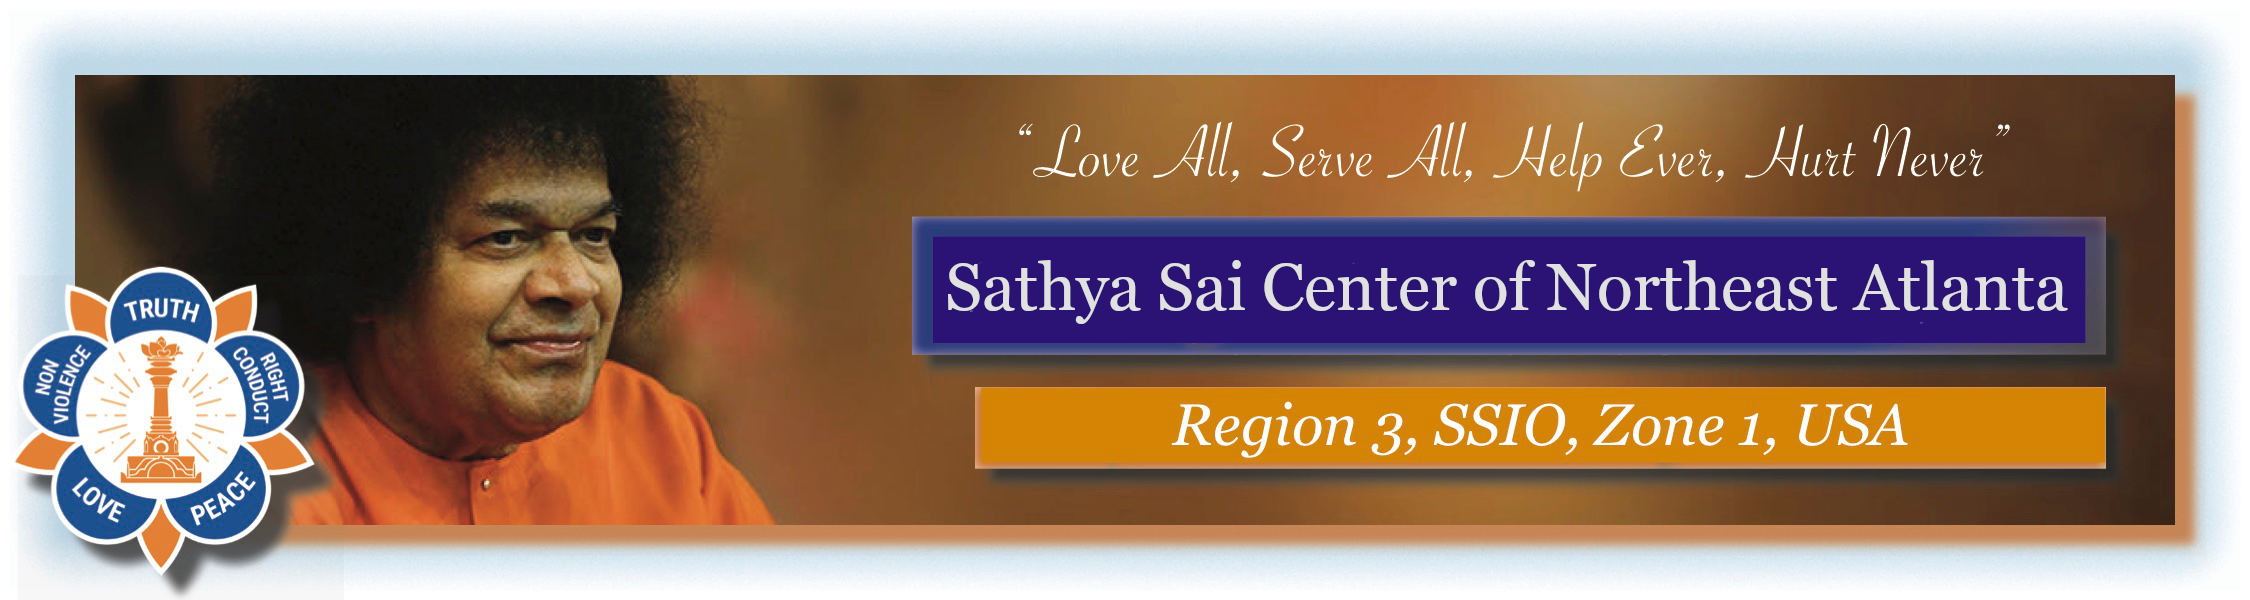 Sathya Sai Center of Northeast Atlanta, Georgia